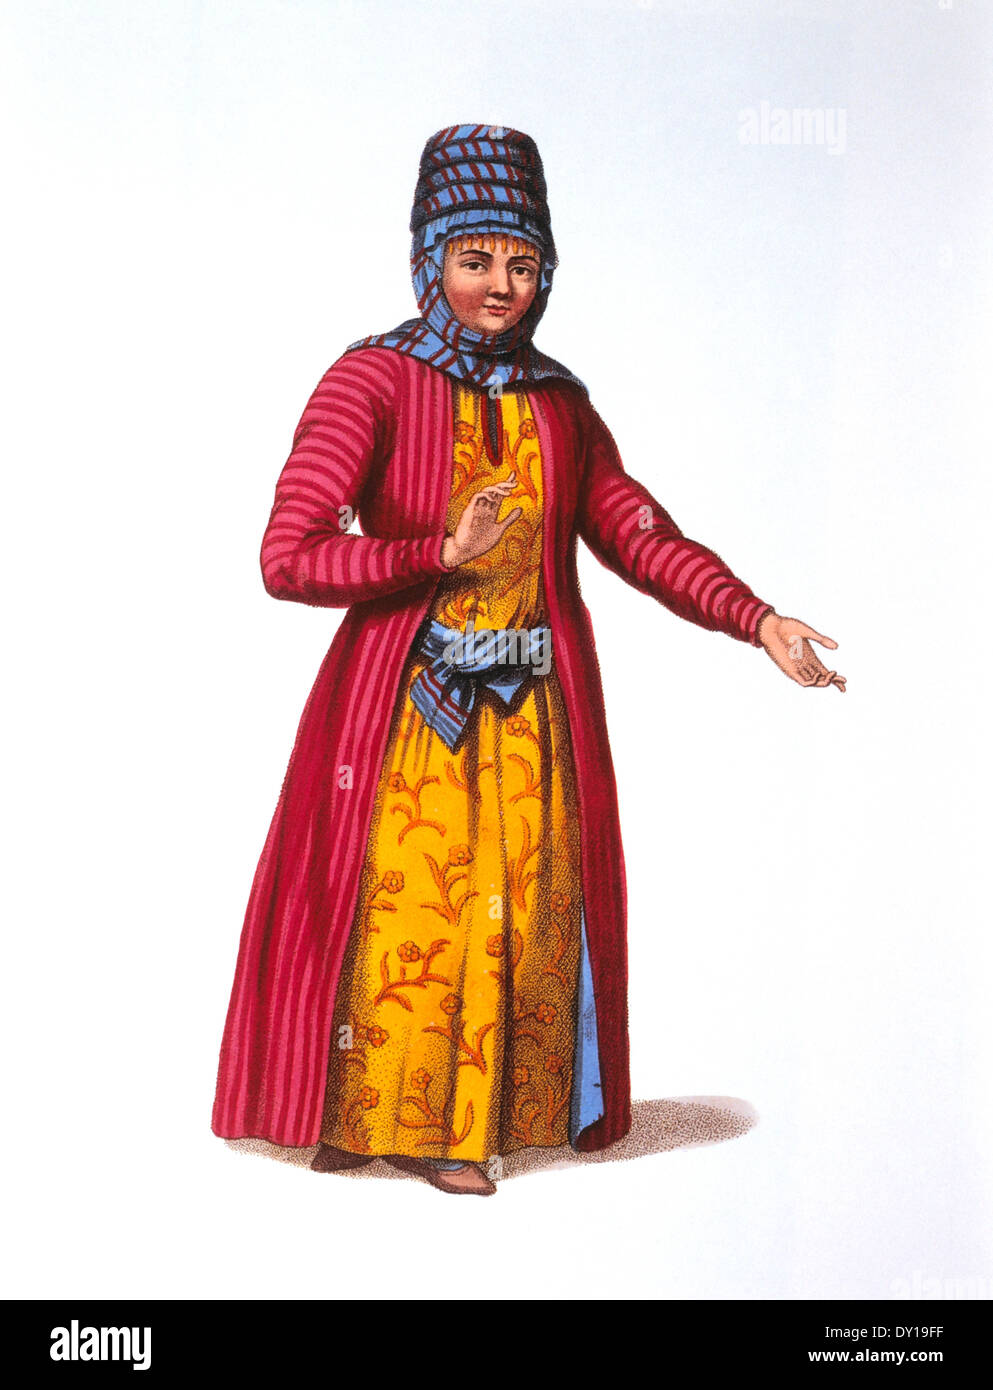 Kirghiz Woman, from Costumes for the Russian Empire, Hand-Colored Engraving, 1803 - Stock Image